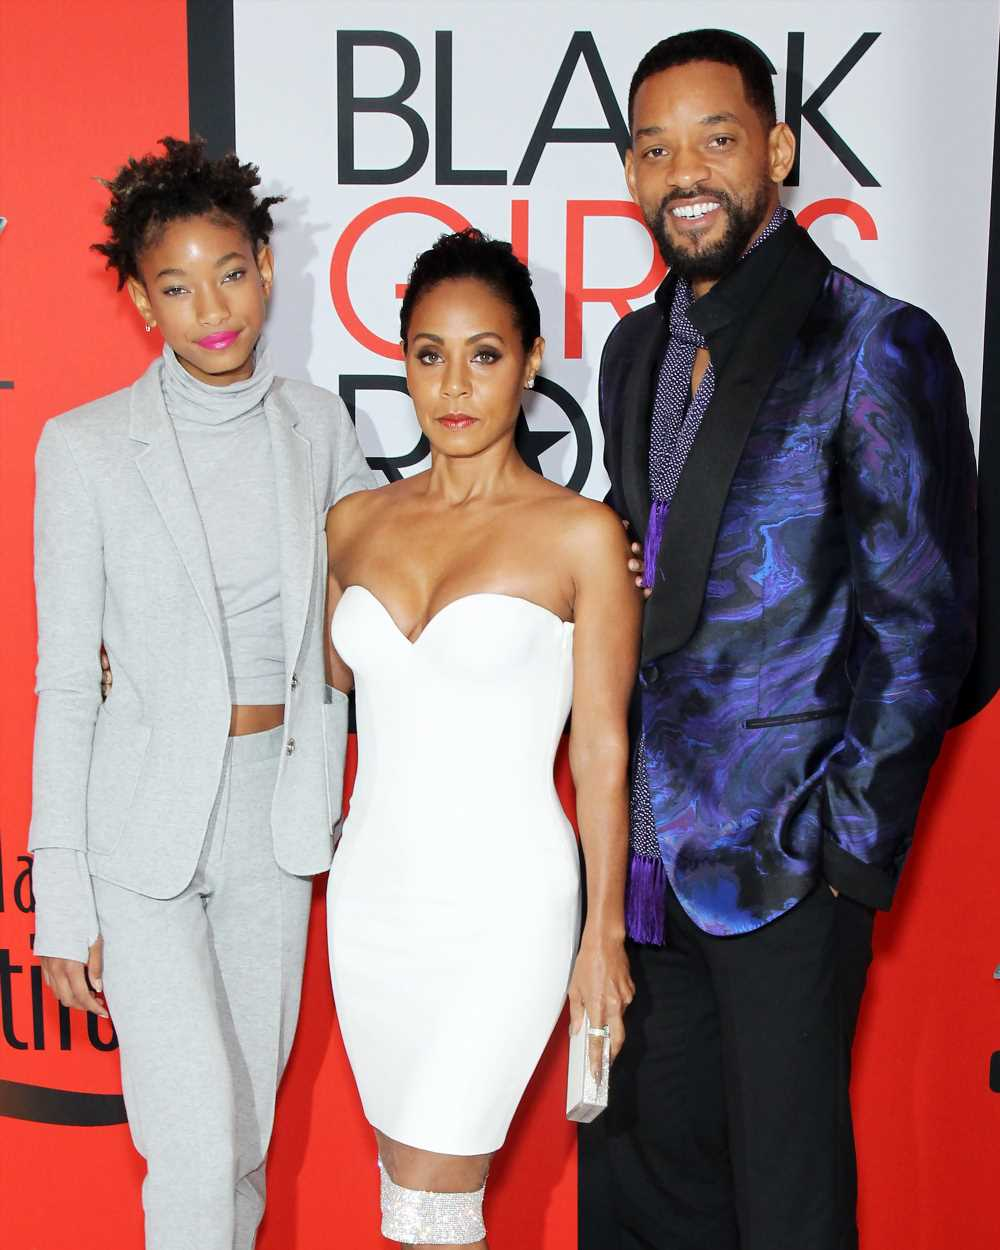 Willow Smith Praises Her Parents' 'Compassion': It 'Inspires Me to Preserve Through Dark Times'